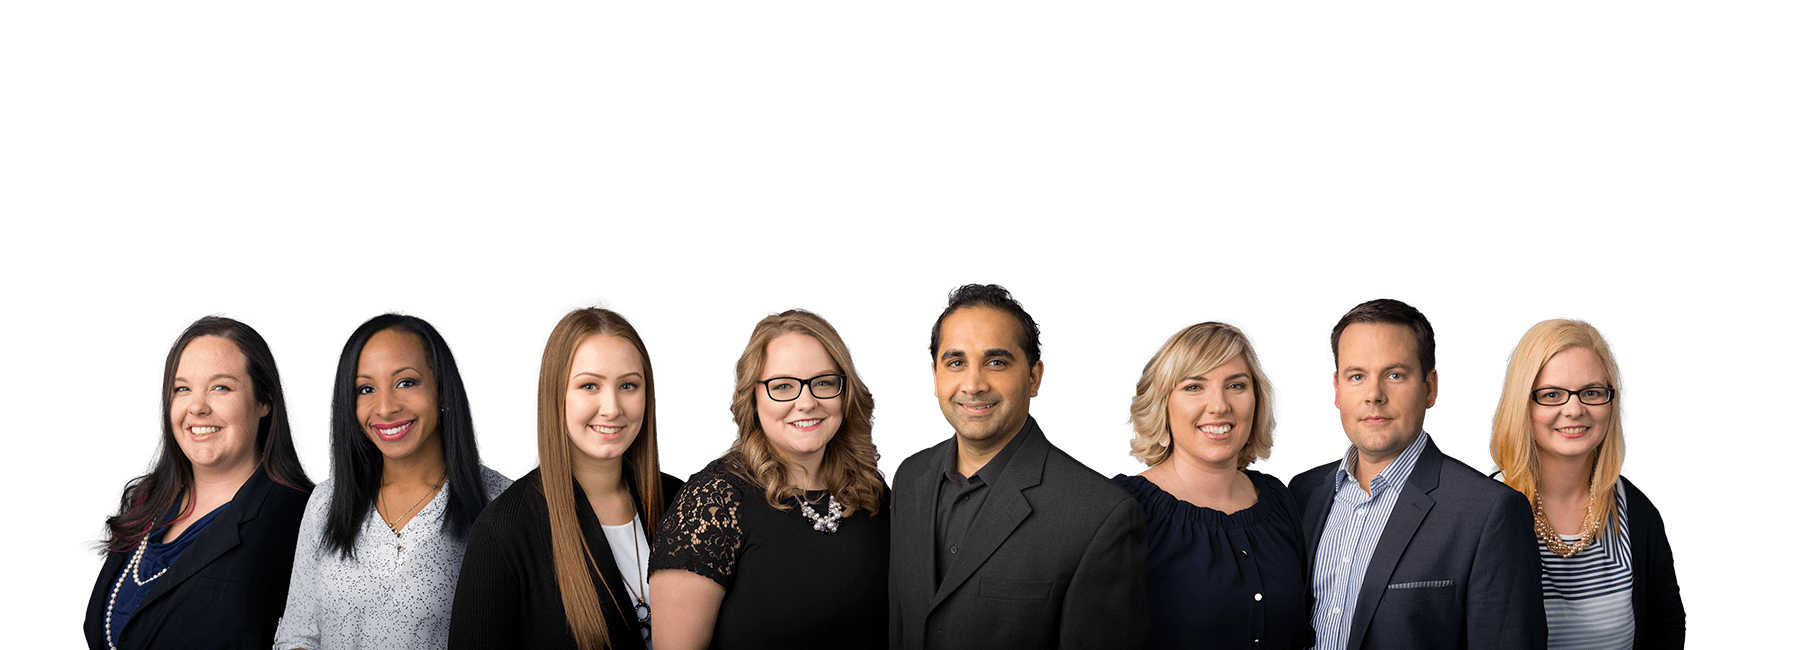 the munir group brantford real estate agency